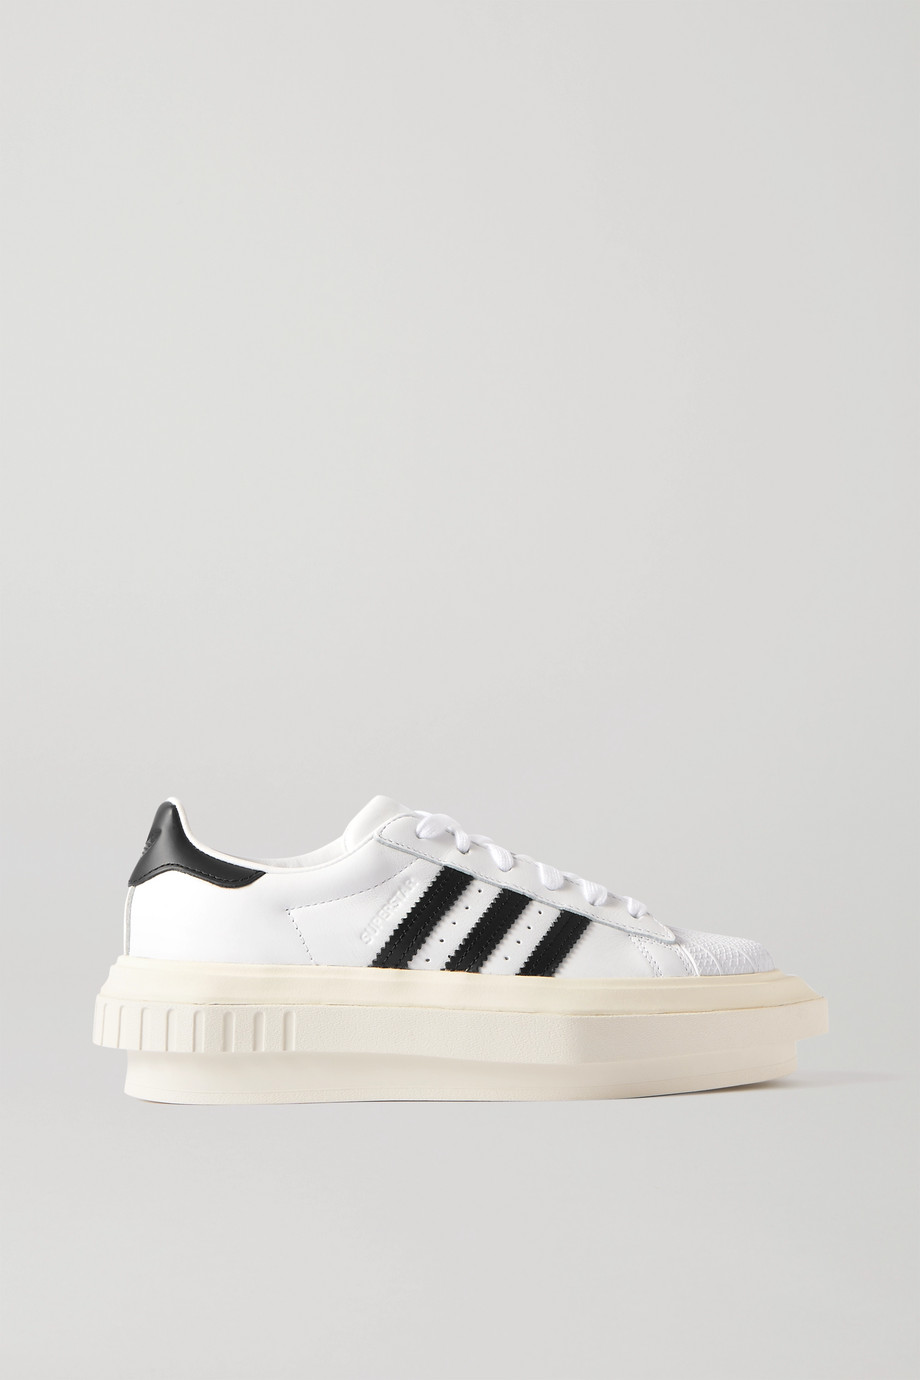 adidas Originals + Beyoncé Superstar leather platform sneakers